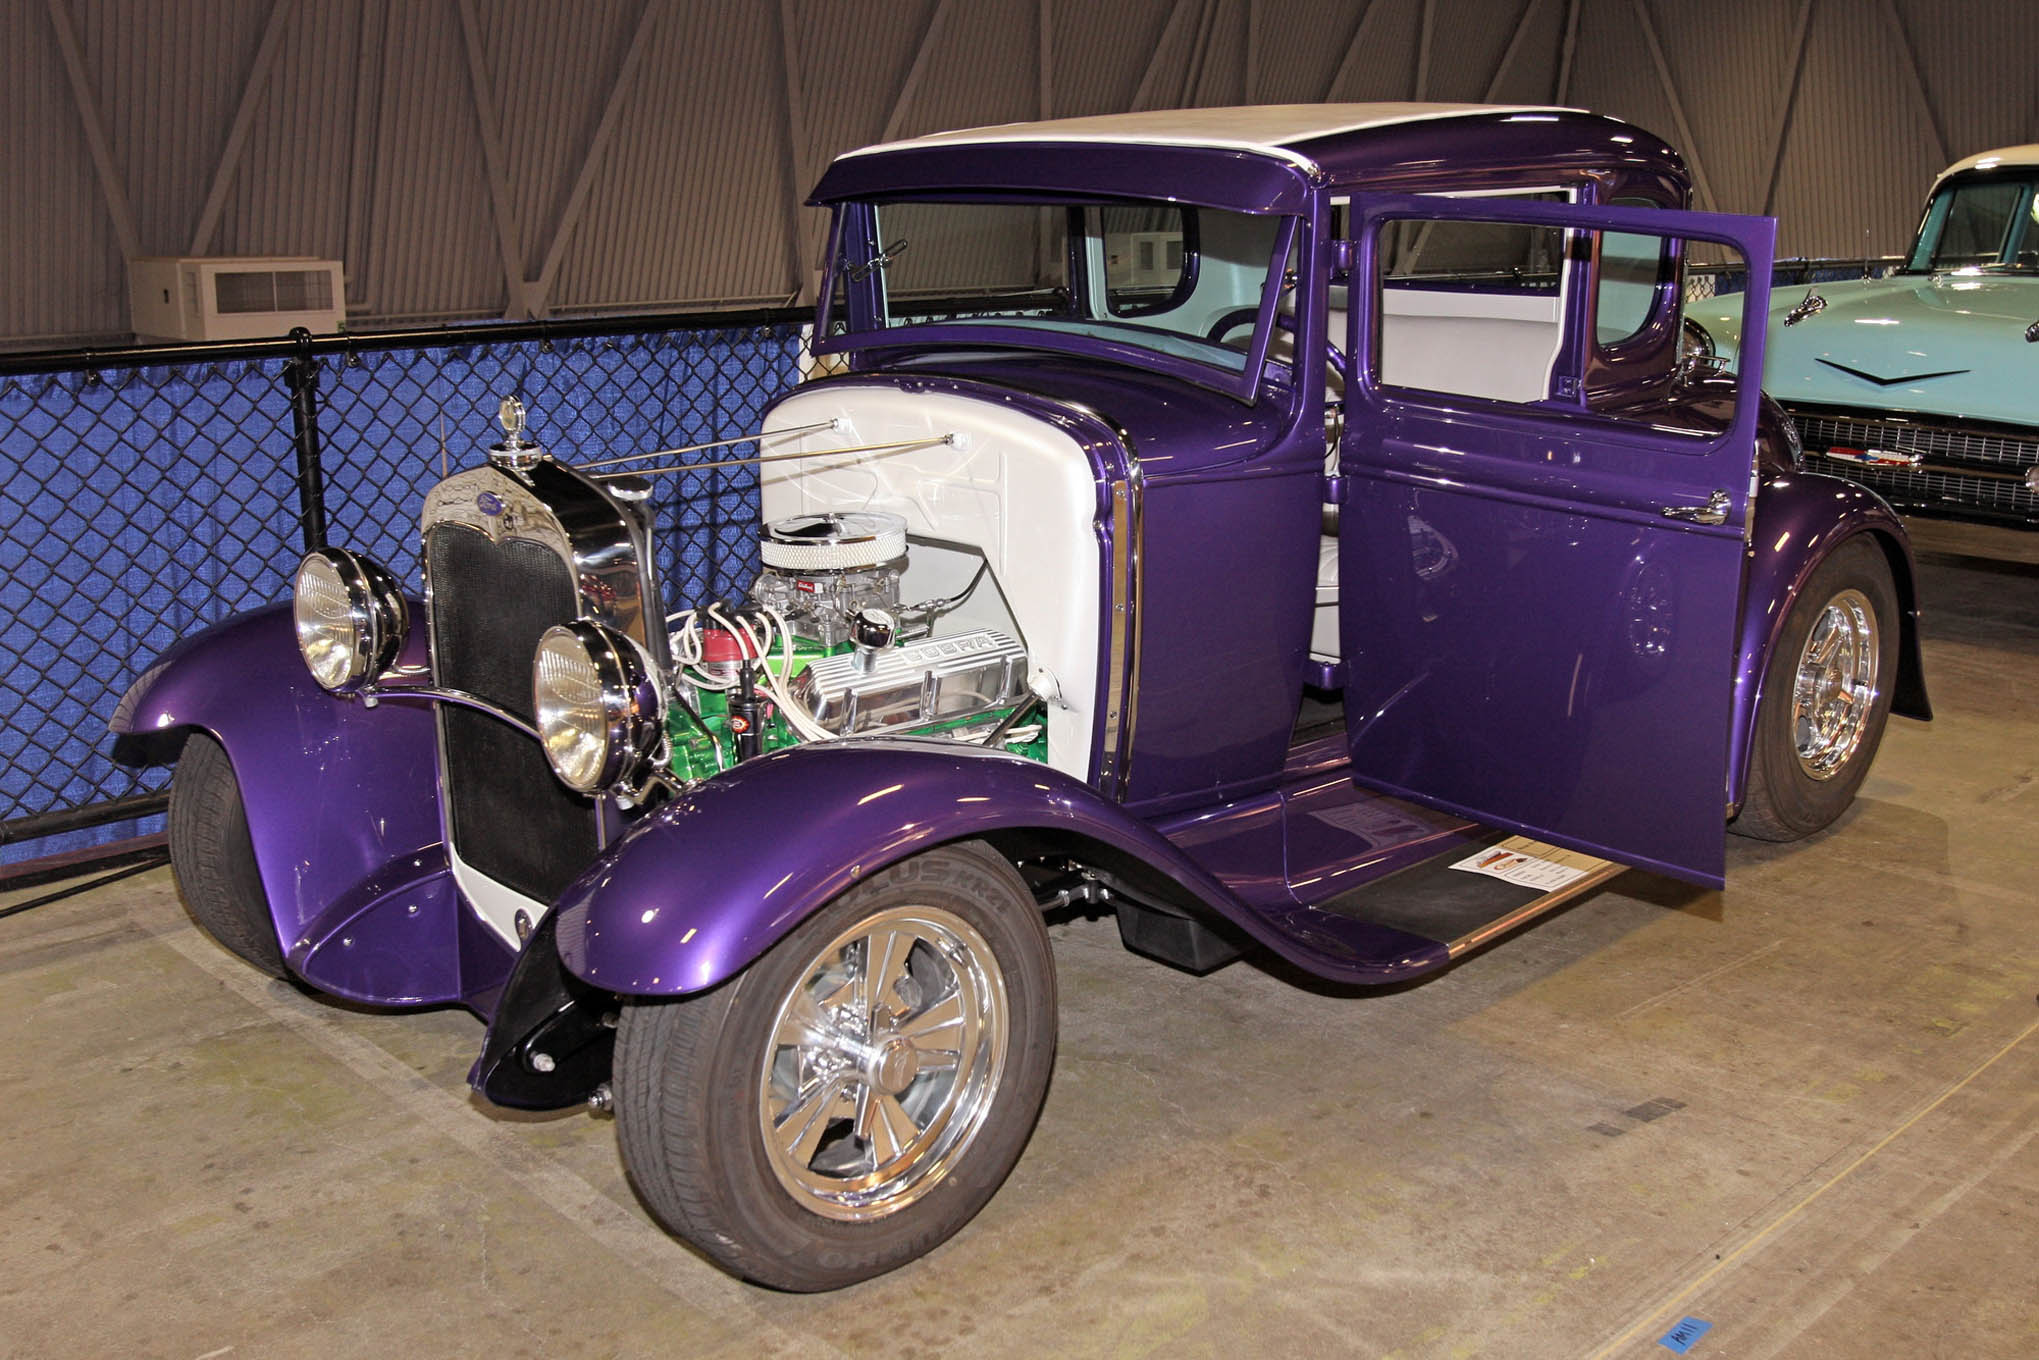 After that violet sheetmetal, green engine and driveline, and bright white firewall, roof insert, and tuck 'n' roll interior, our favorite thing about Greg Shilin's 1931 Ford Model A coupe by Pagano Rod & Custom is the fact that it is actually Ford-powered.